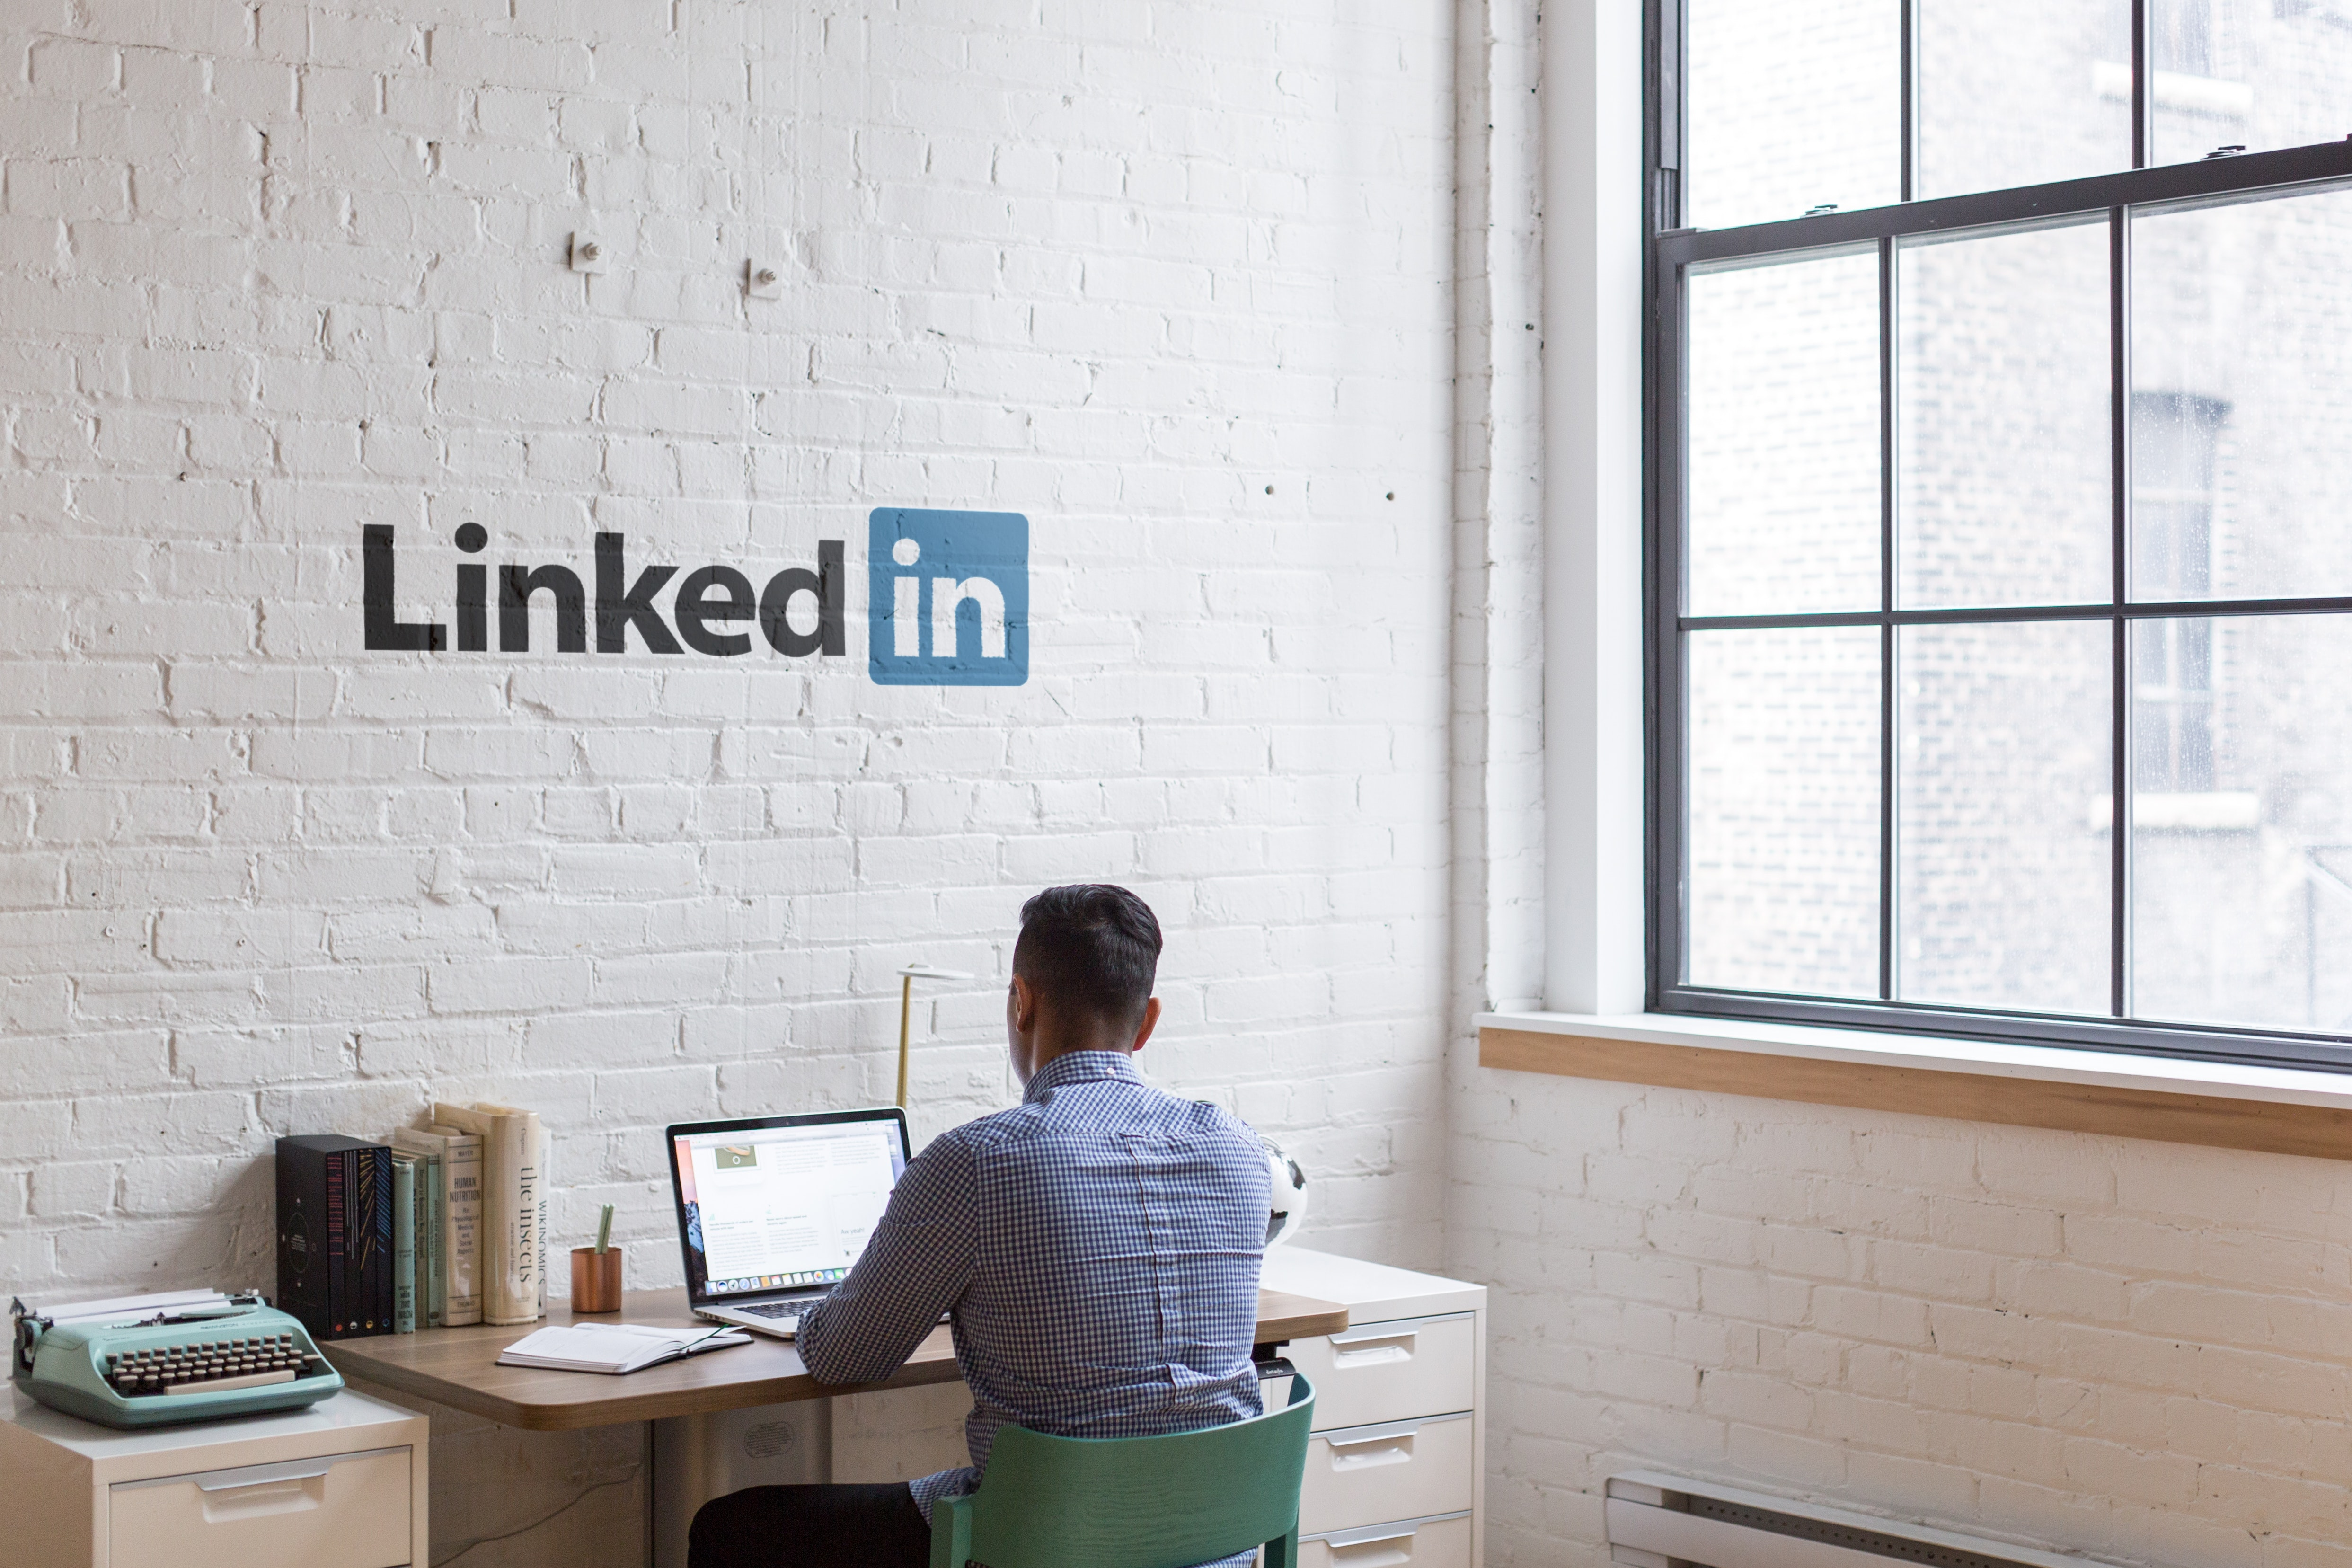 LinkedIn is one of the best apps for content and marketing professionals